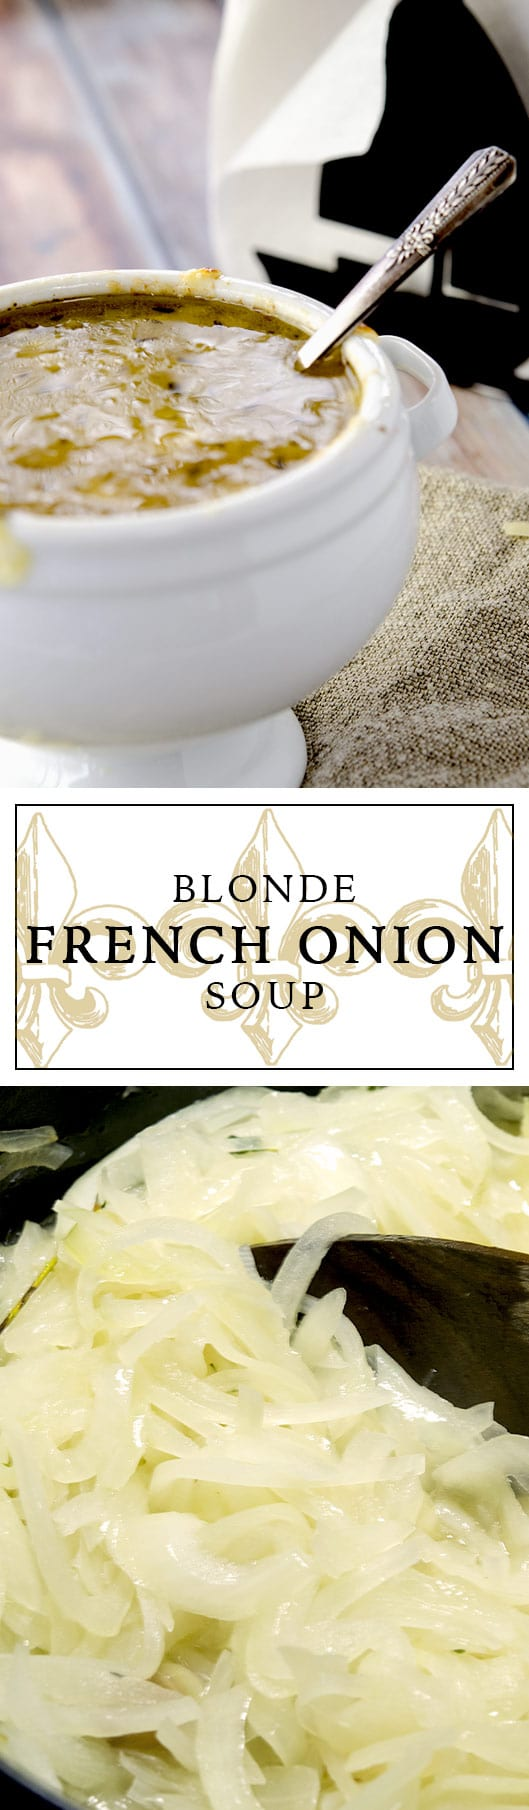 A delightful play on a traditional French Onion Soup Recipe. Come see why this one is blonde!